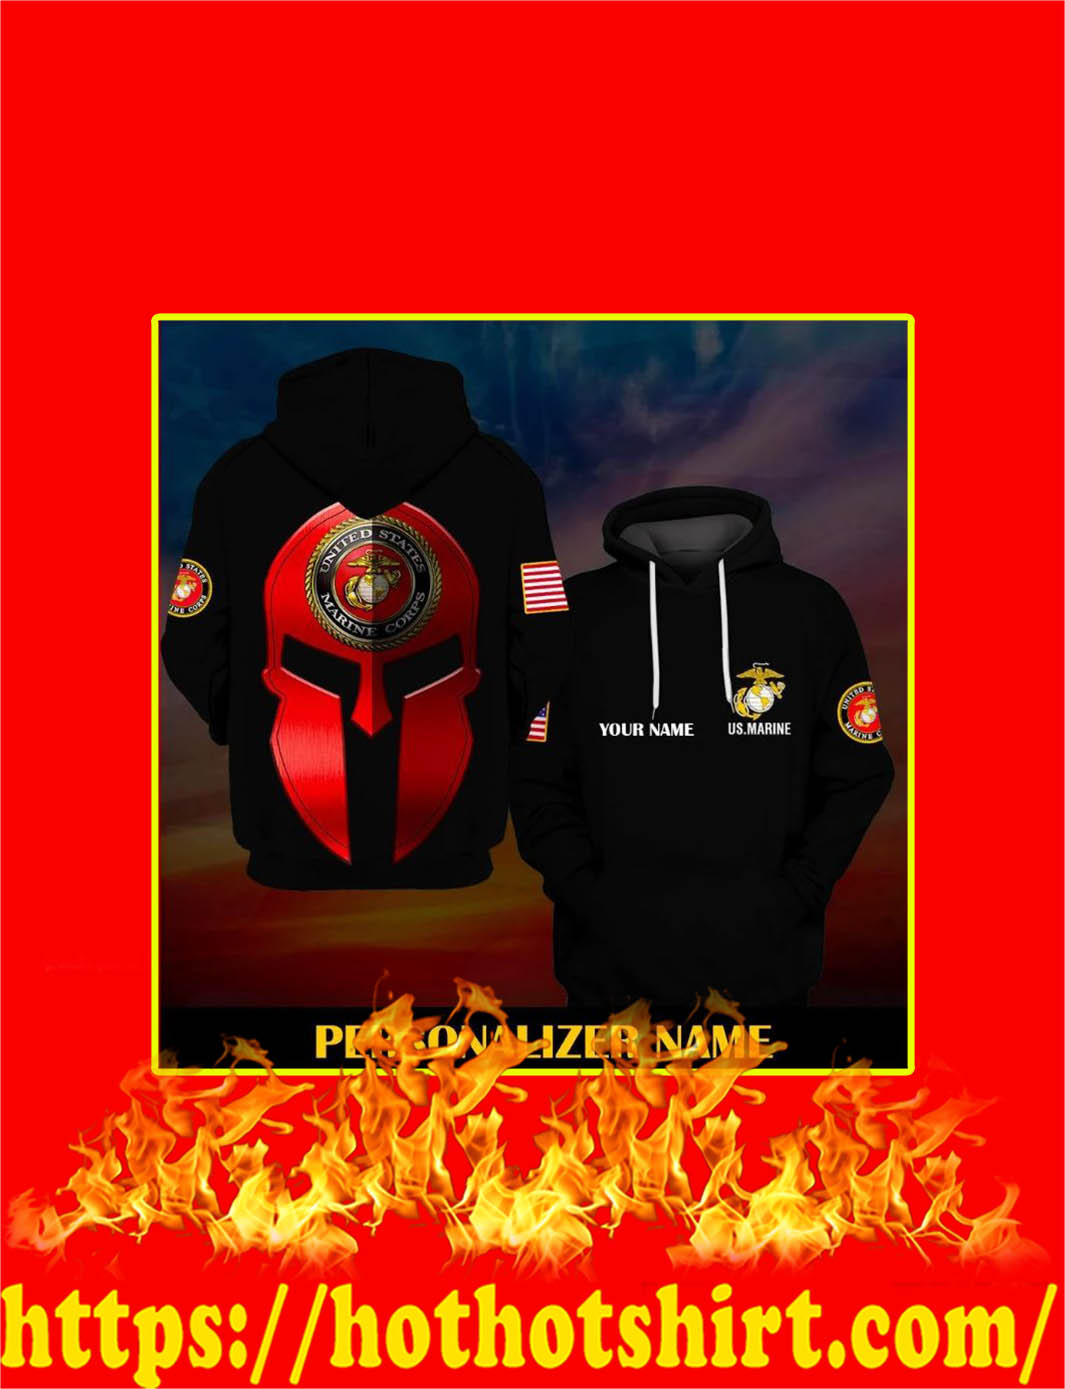 US Marine Corps Custom Personalized Name All Over Printed 3D Hoodie